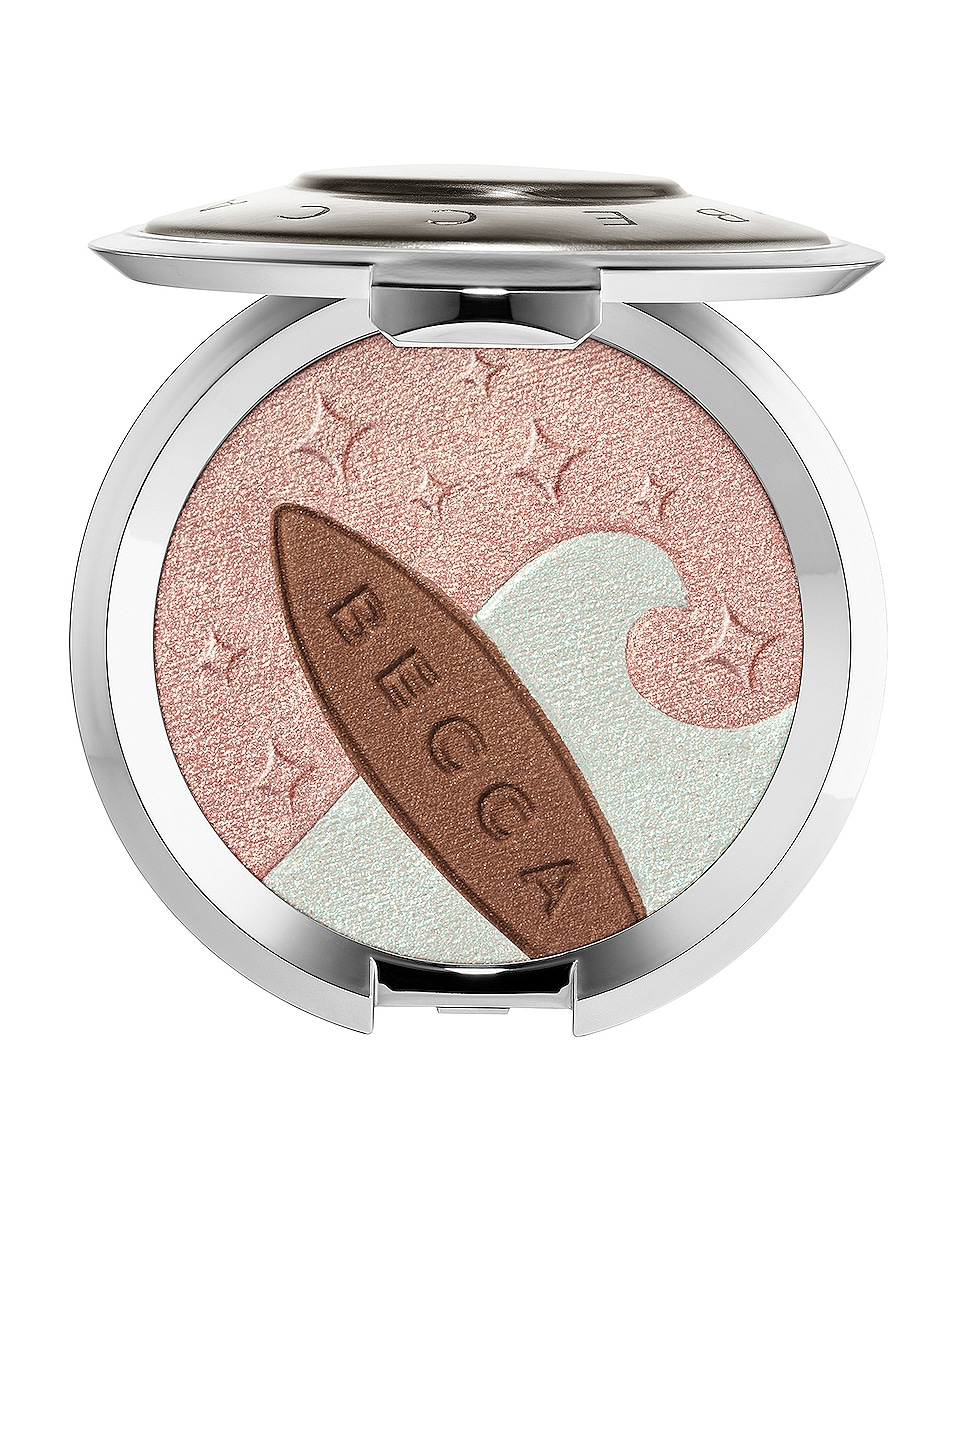 BECCA Shimmering Skin Perfector Pressed Highlighter & Sunlit Bronzer in Ocean Glow